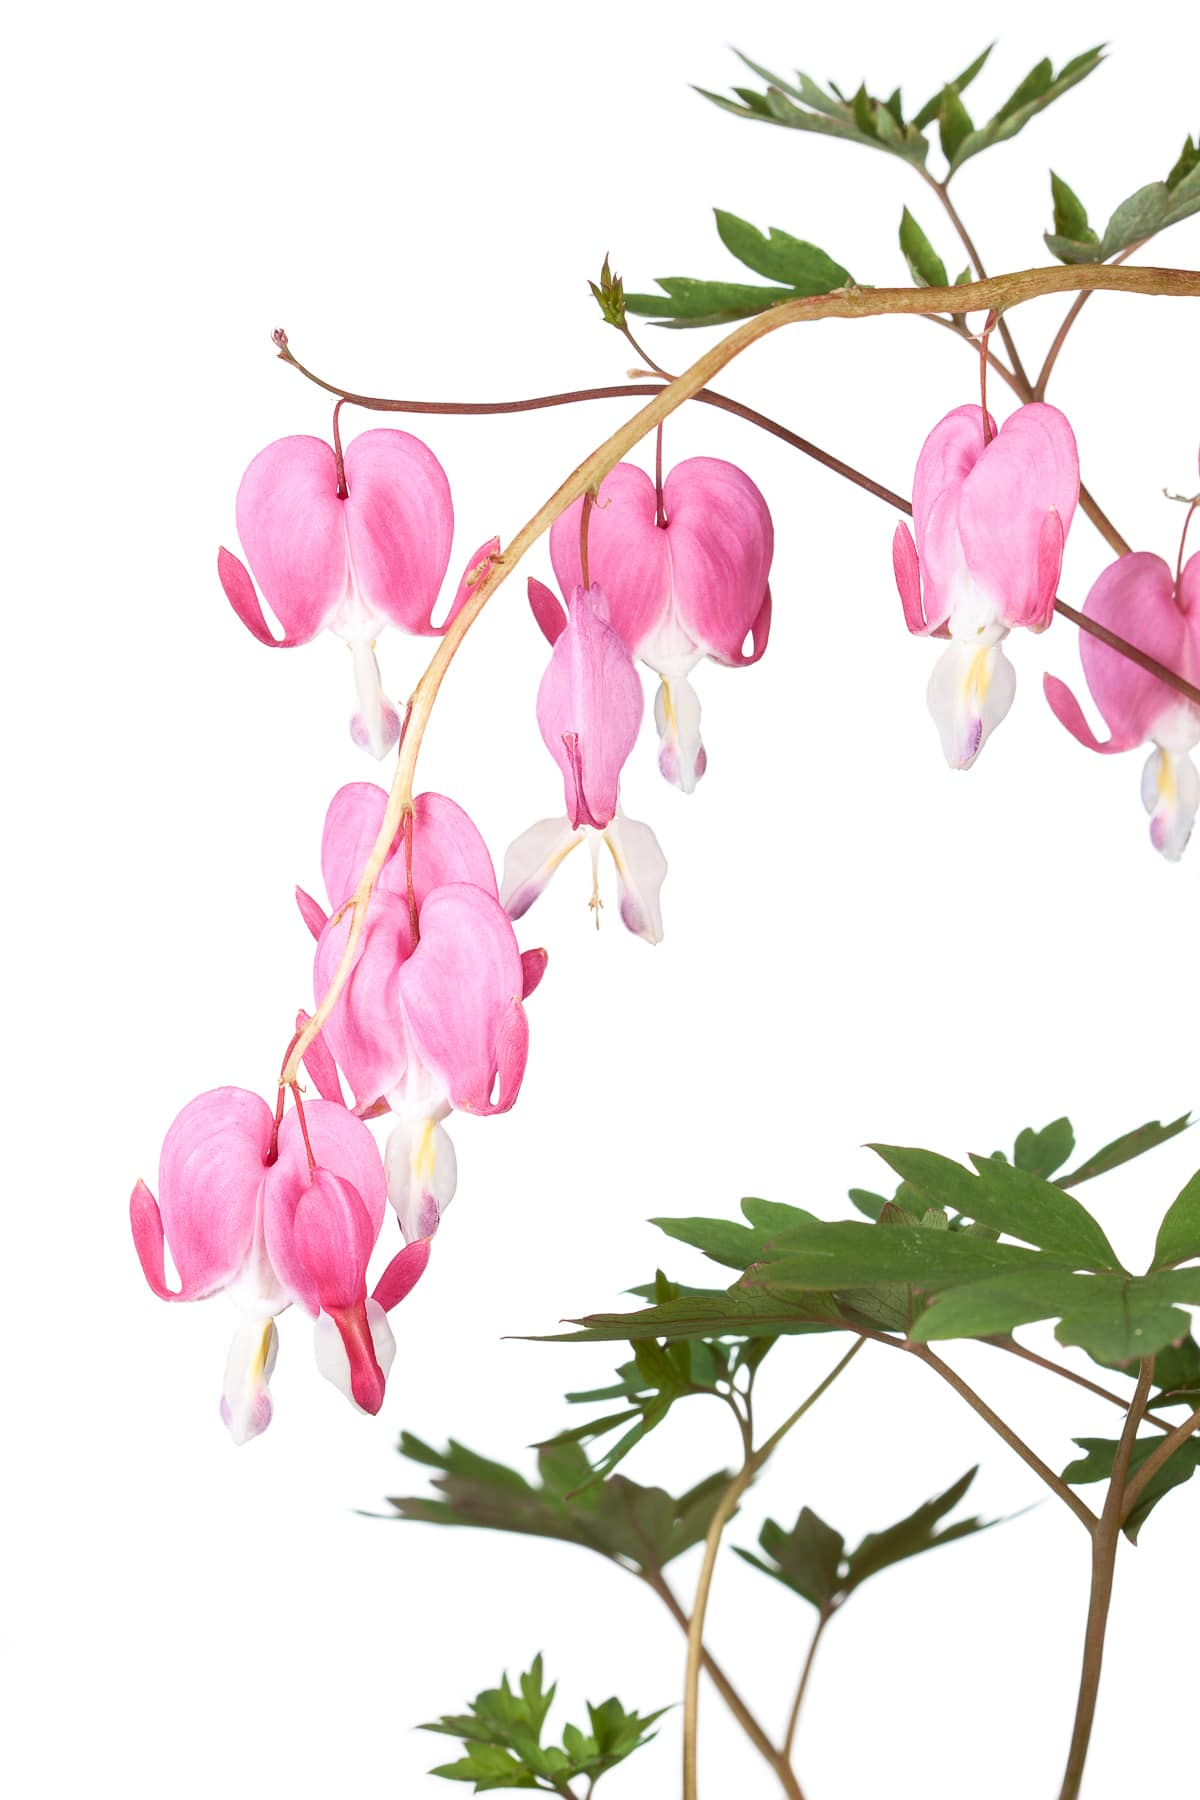 Pink heart shaped flowers hanging from a wooden stem.  Bleeding heart plant against a bright white isolated background